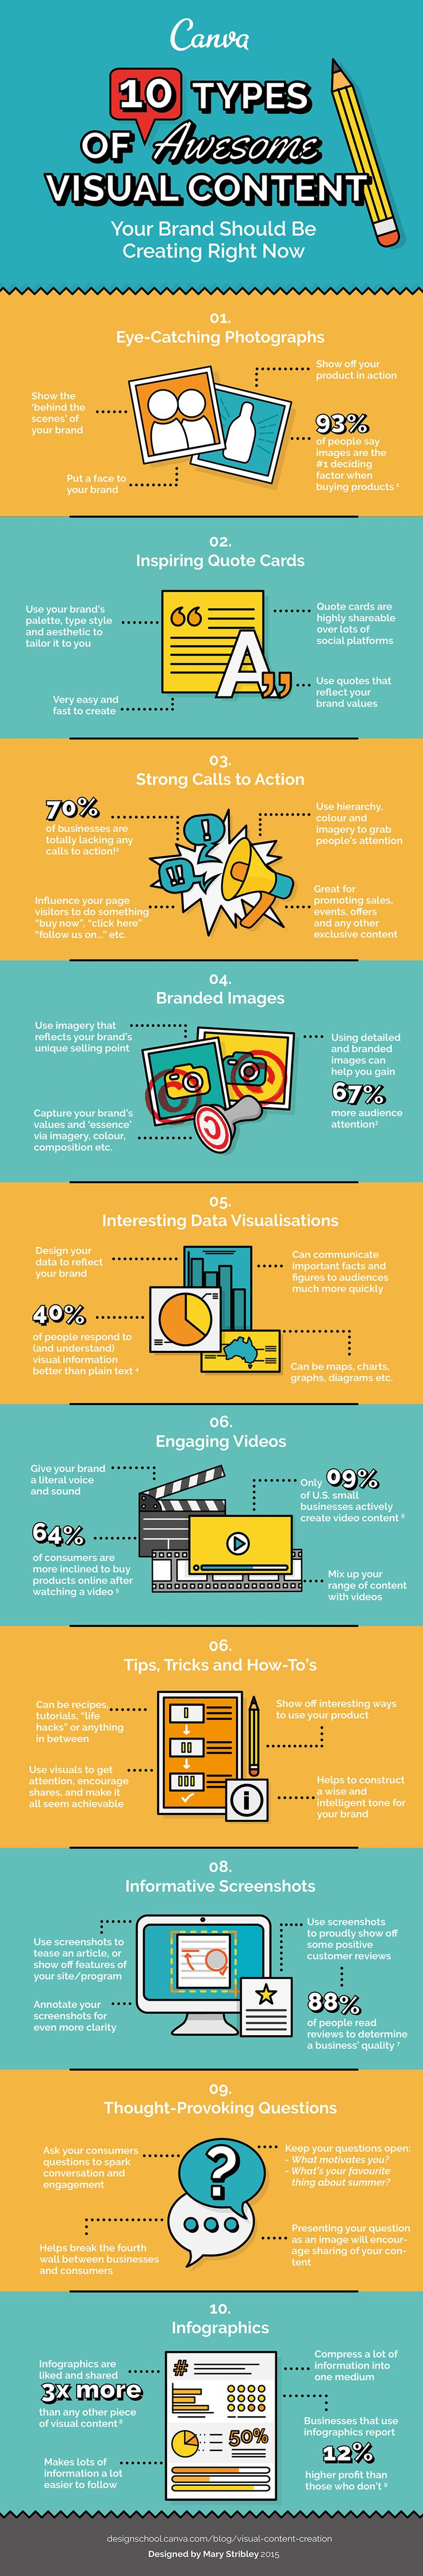 10 Types Of Awesome Visual Content Your Brand Should Be Creating Right Now [Infographic]